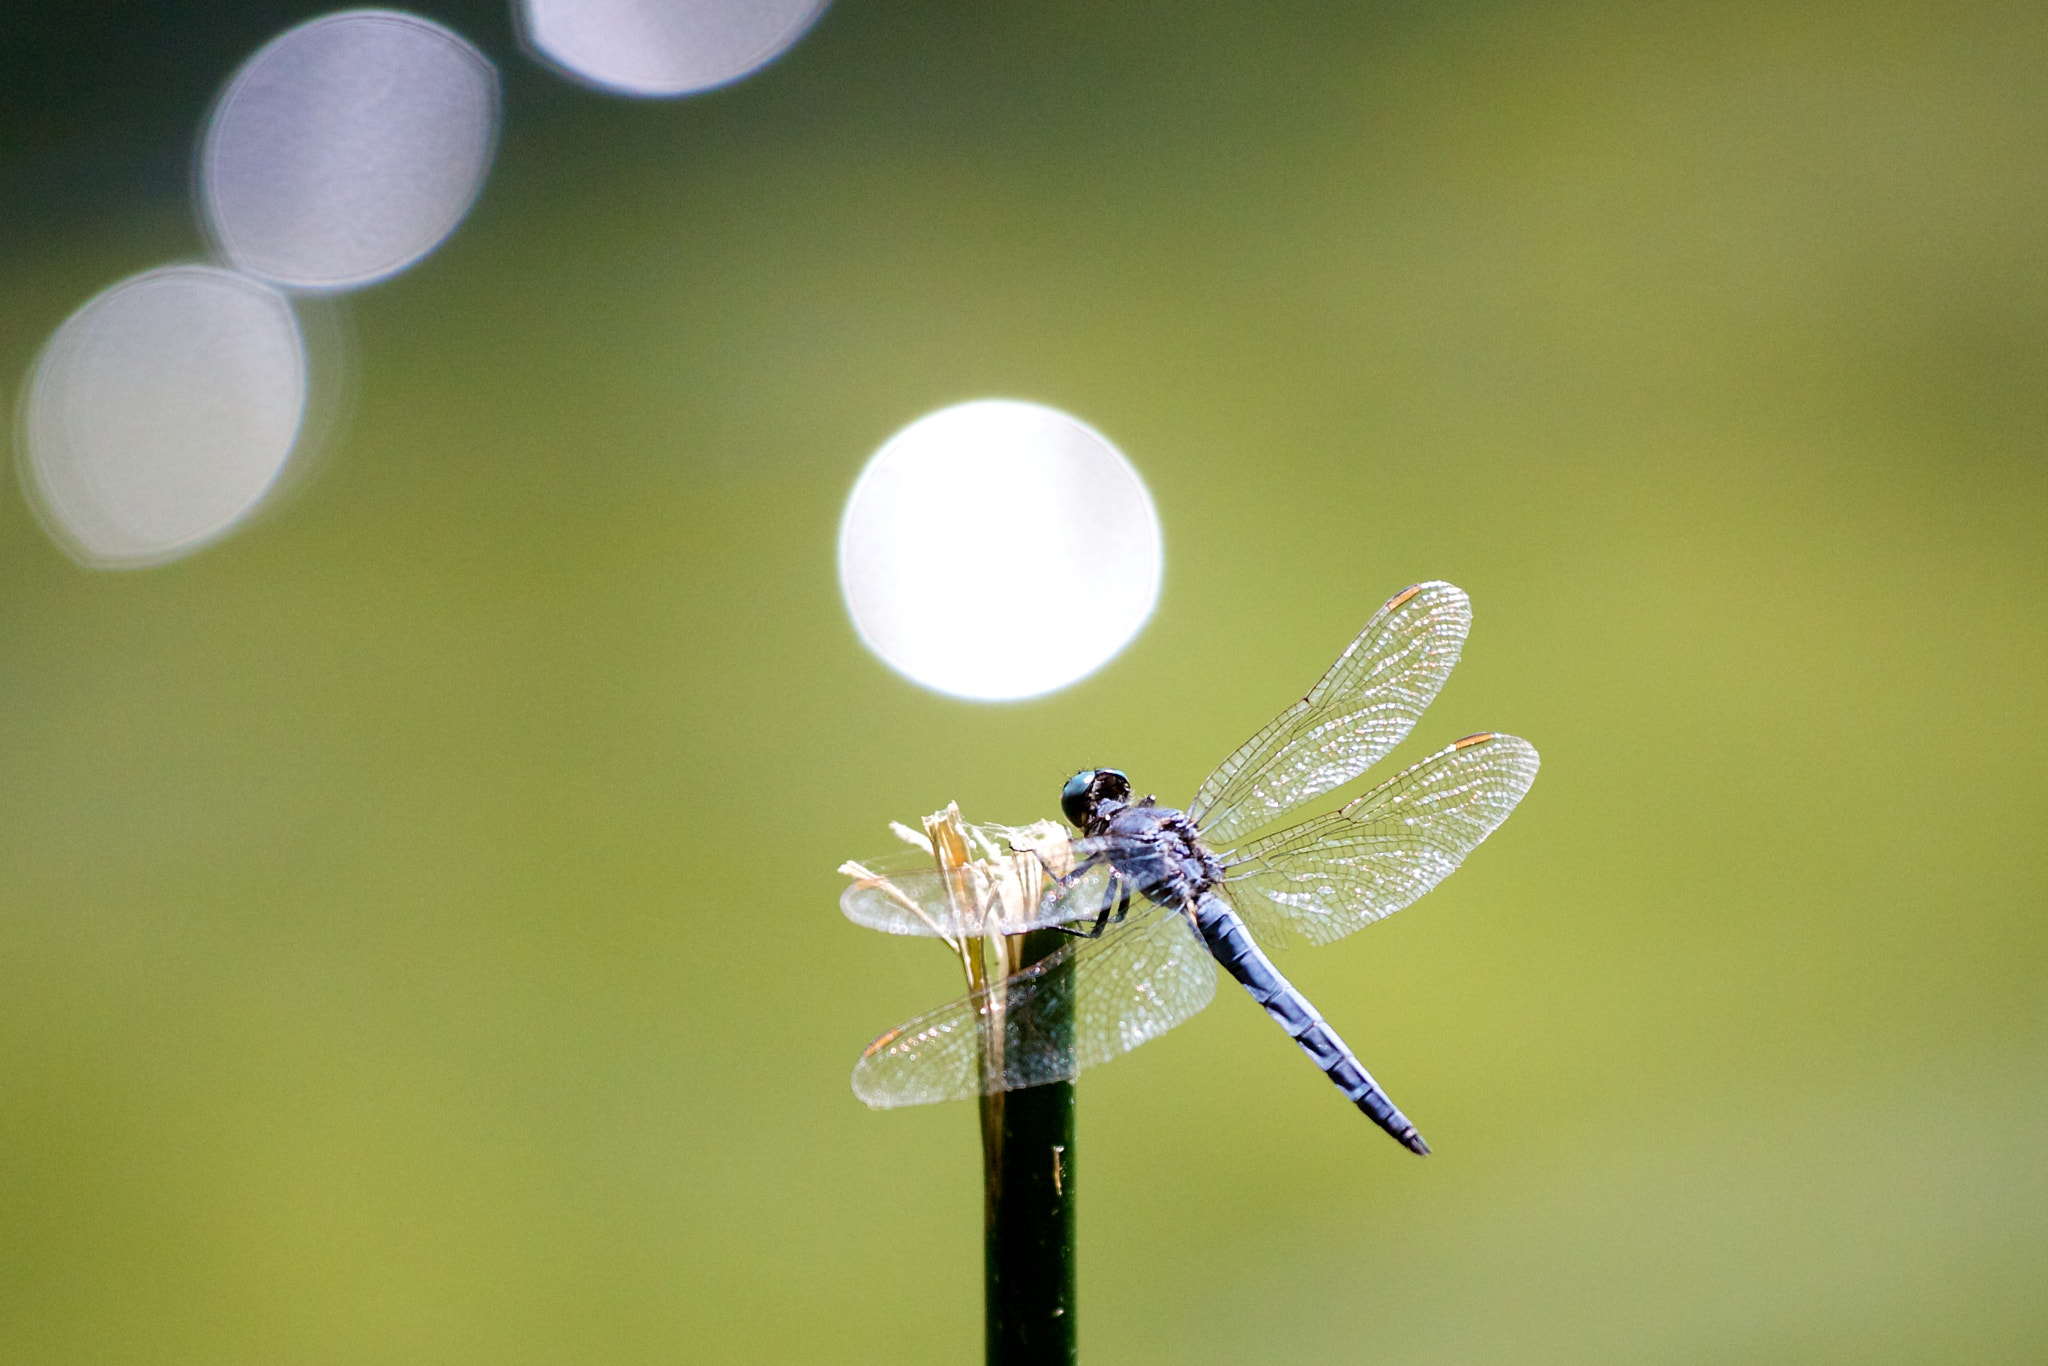 Photograph Dragonfly, Krka, Croatia by Europe Trotter on 500px